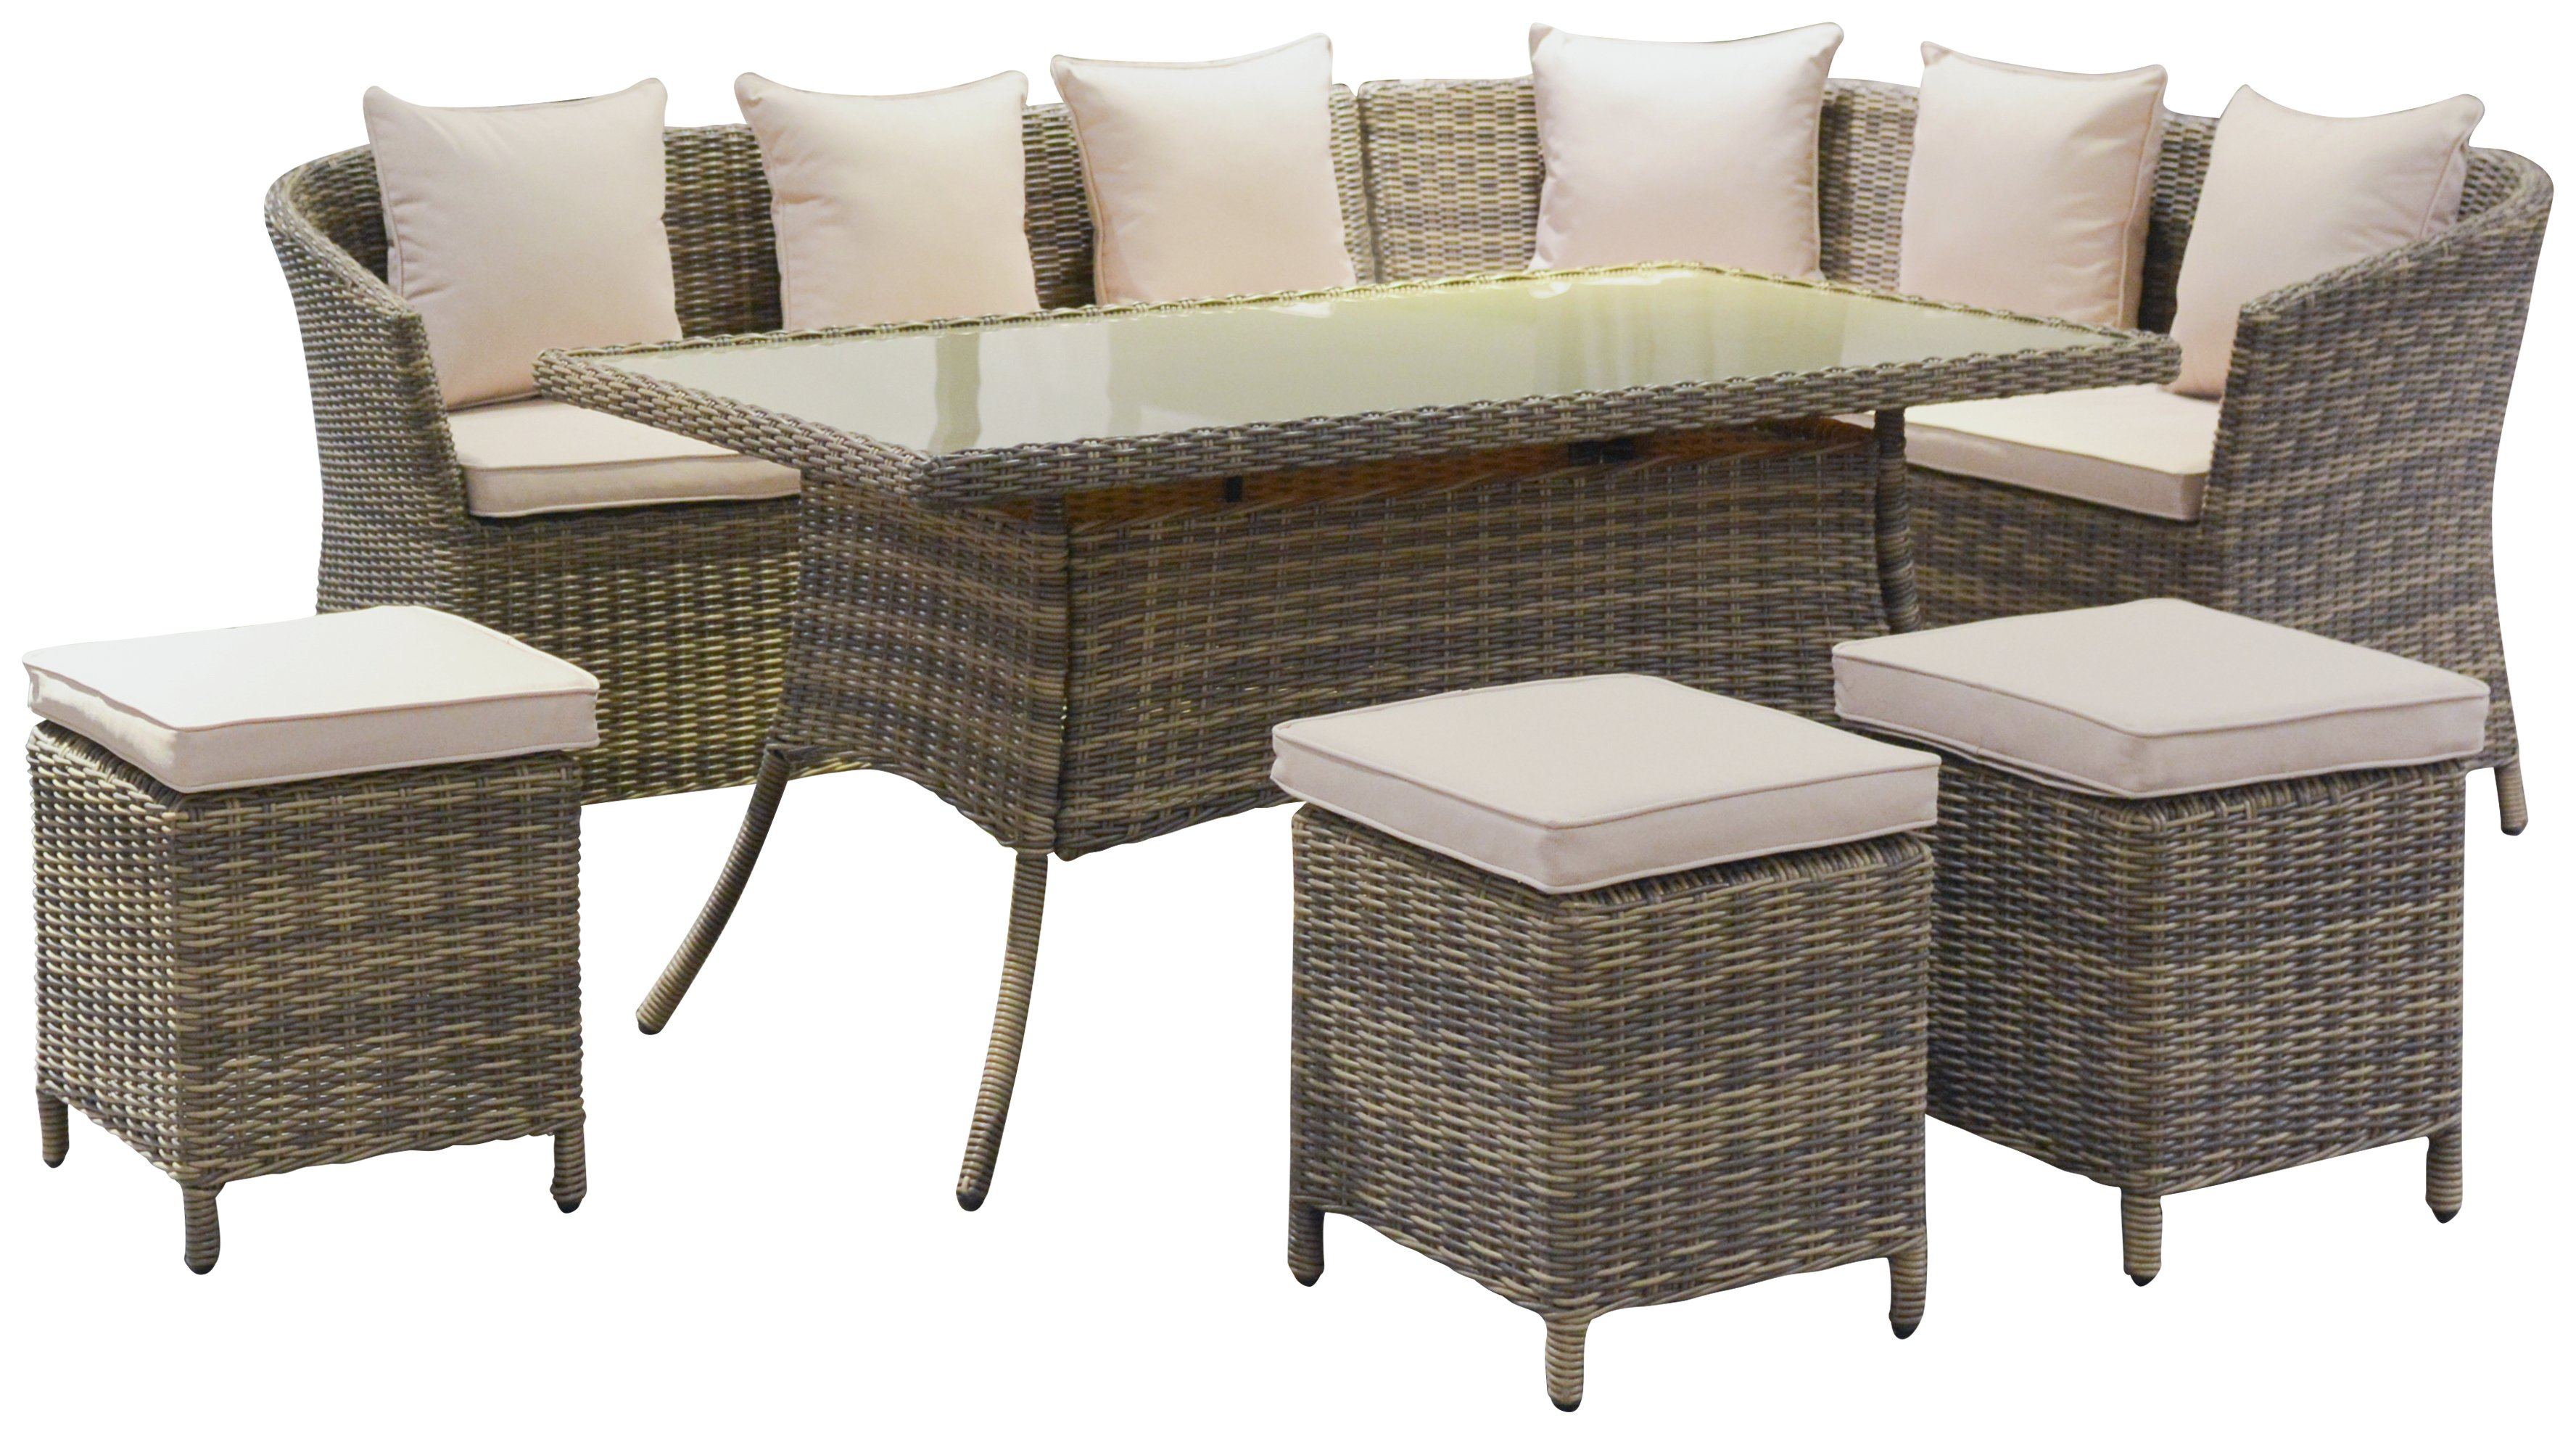 Garden Furniture 8 Seats buy rattan effect 8 seater corner sofa, dining table and stools at